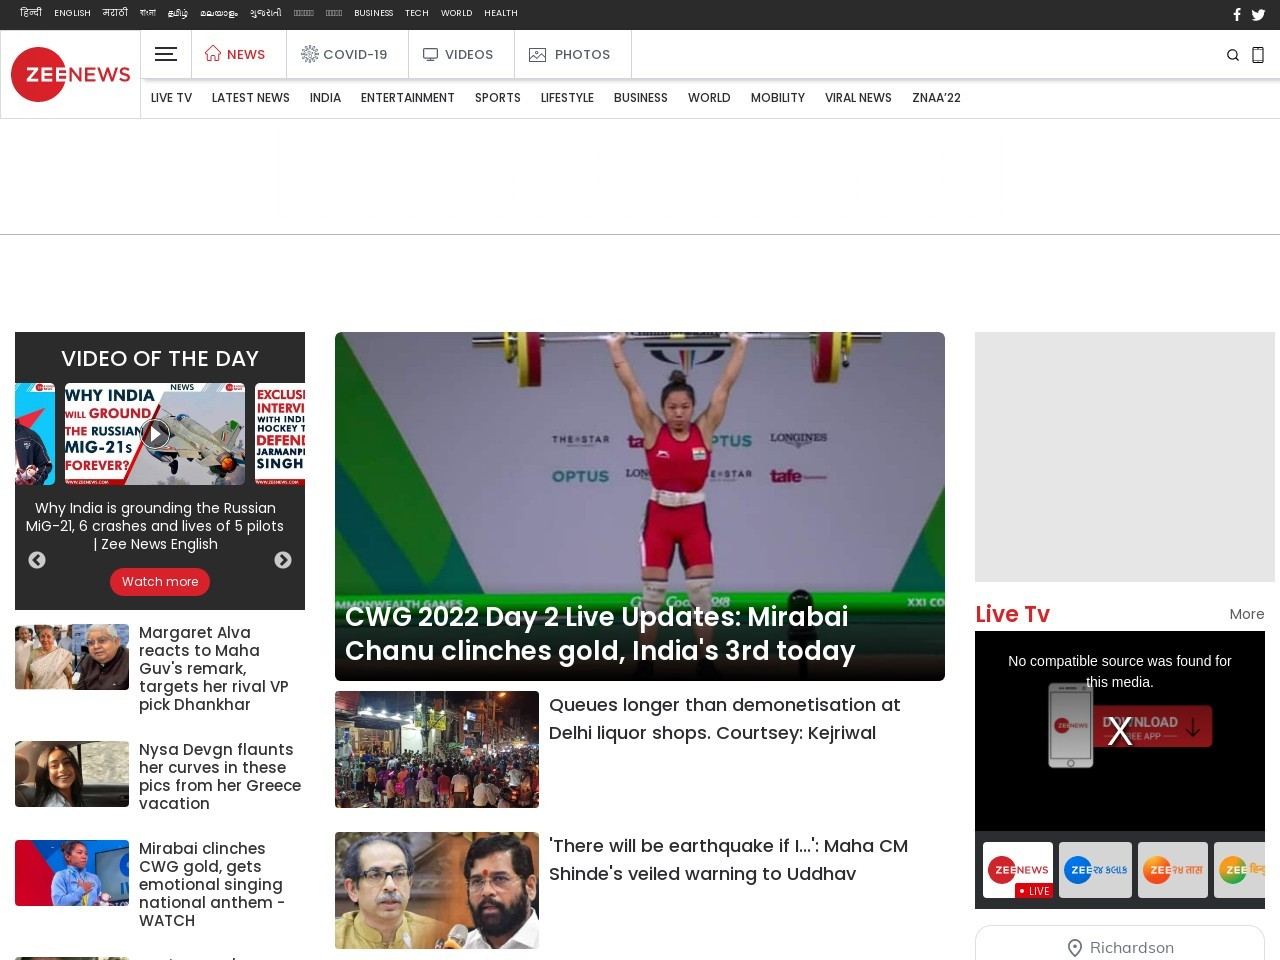 PCB likely to make decision to hold Pakistan Super League final in Lahore today